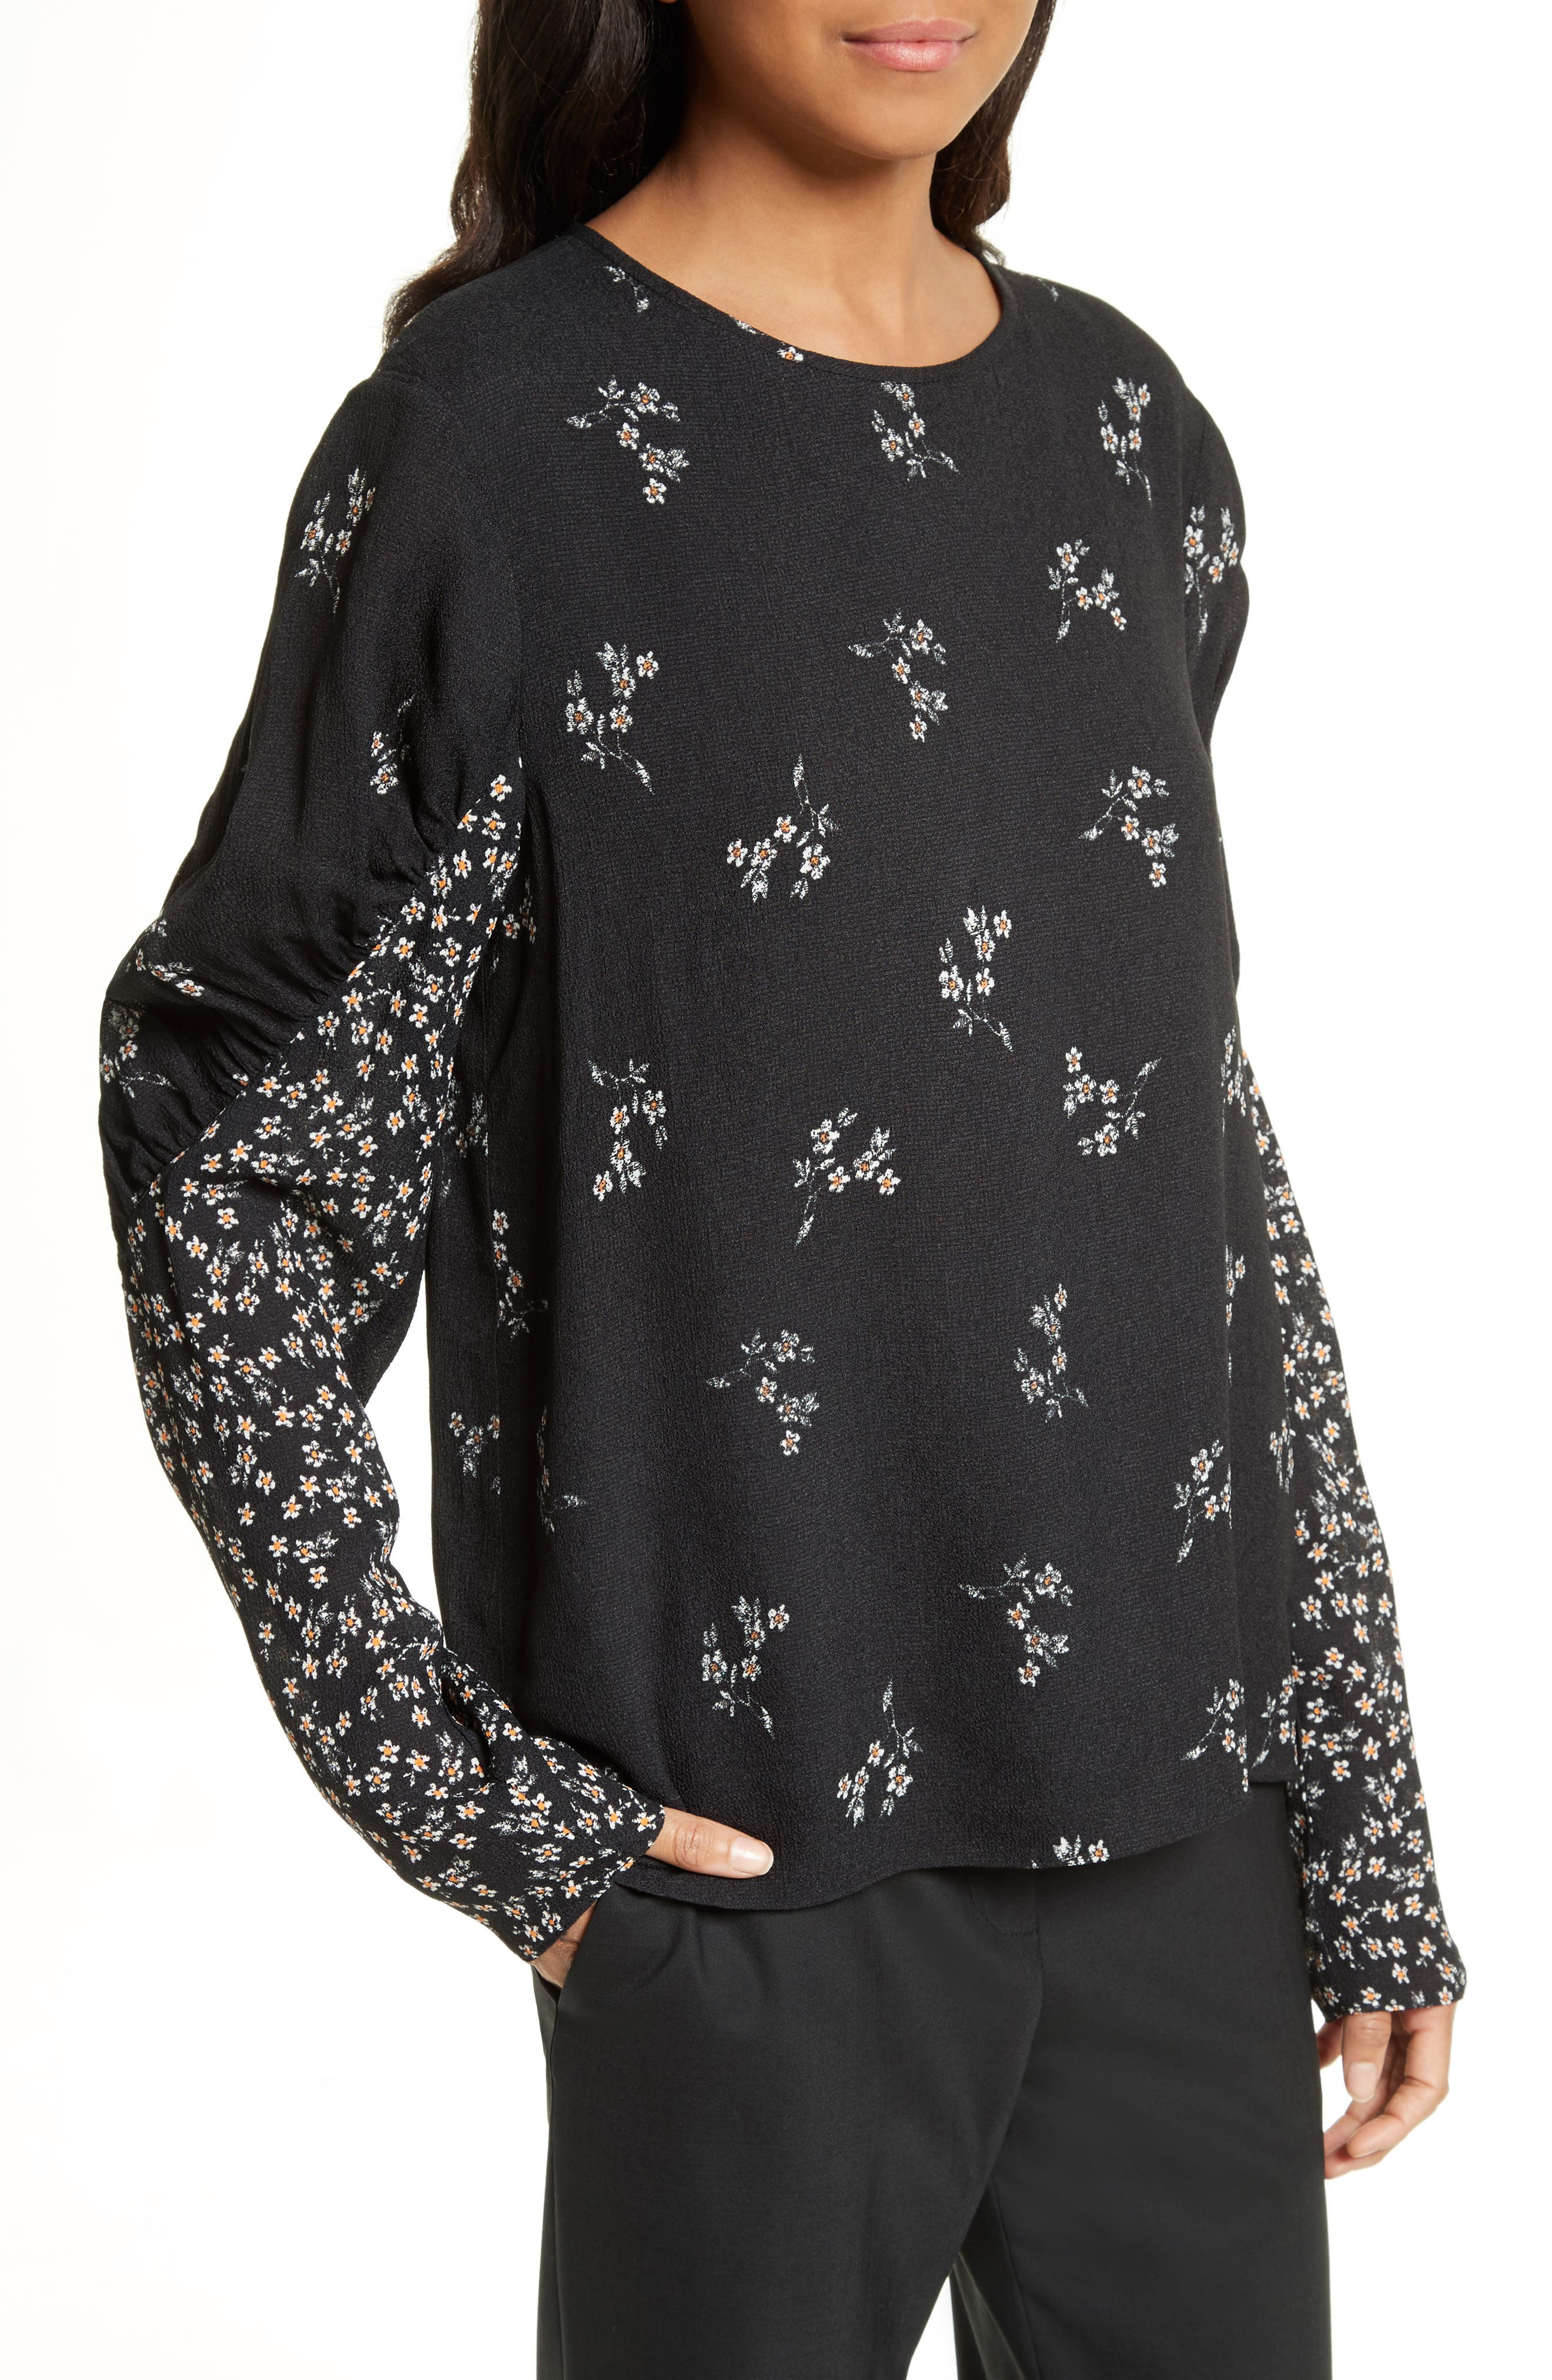 Florence Lili Floral Top,                             Alternate thumbnail 4, color,                             006